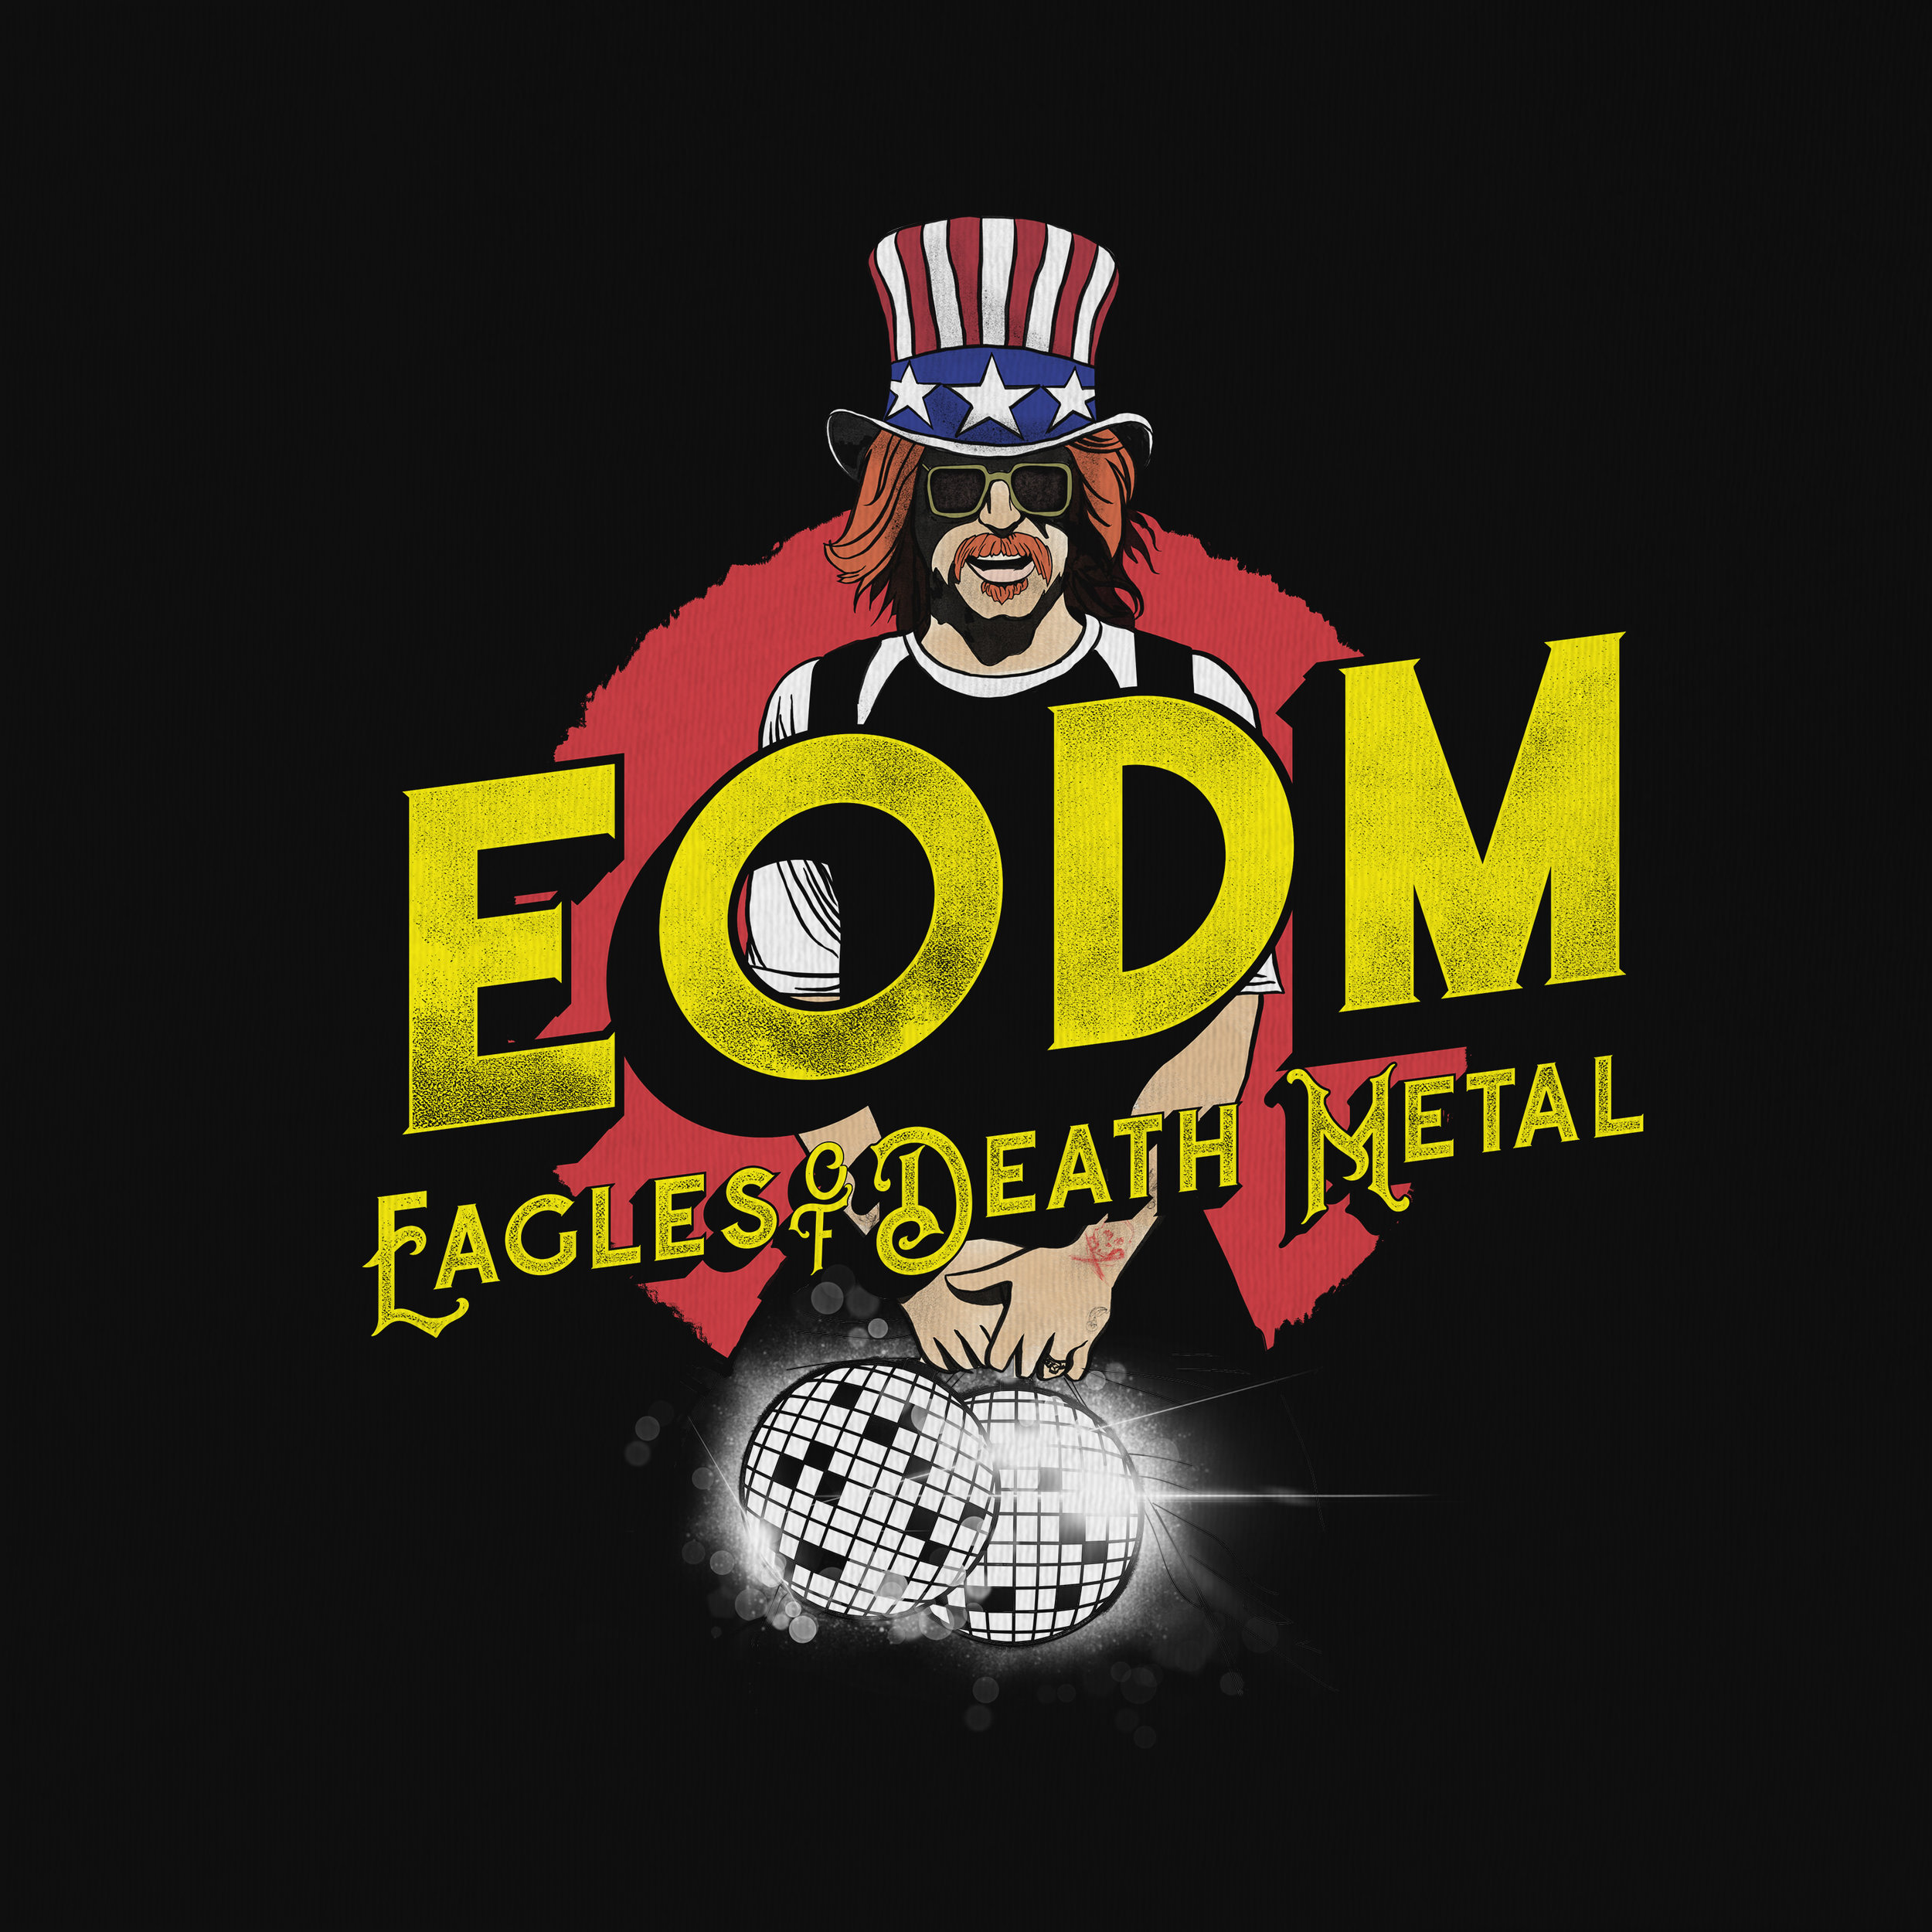 eagles-of-death-metal.jpg